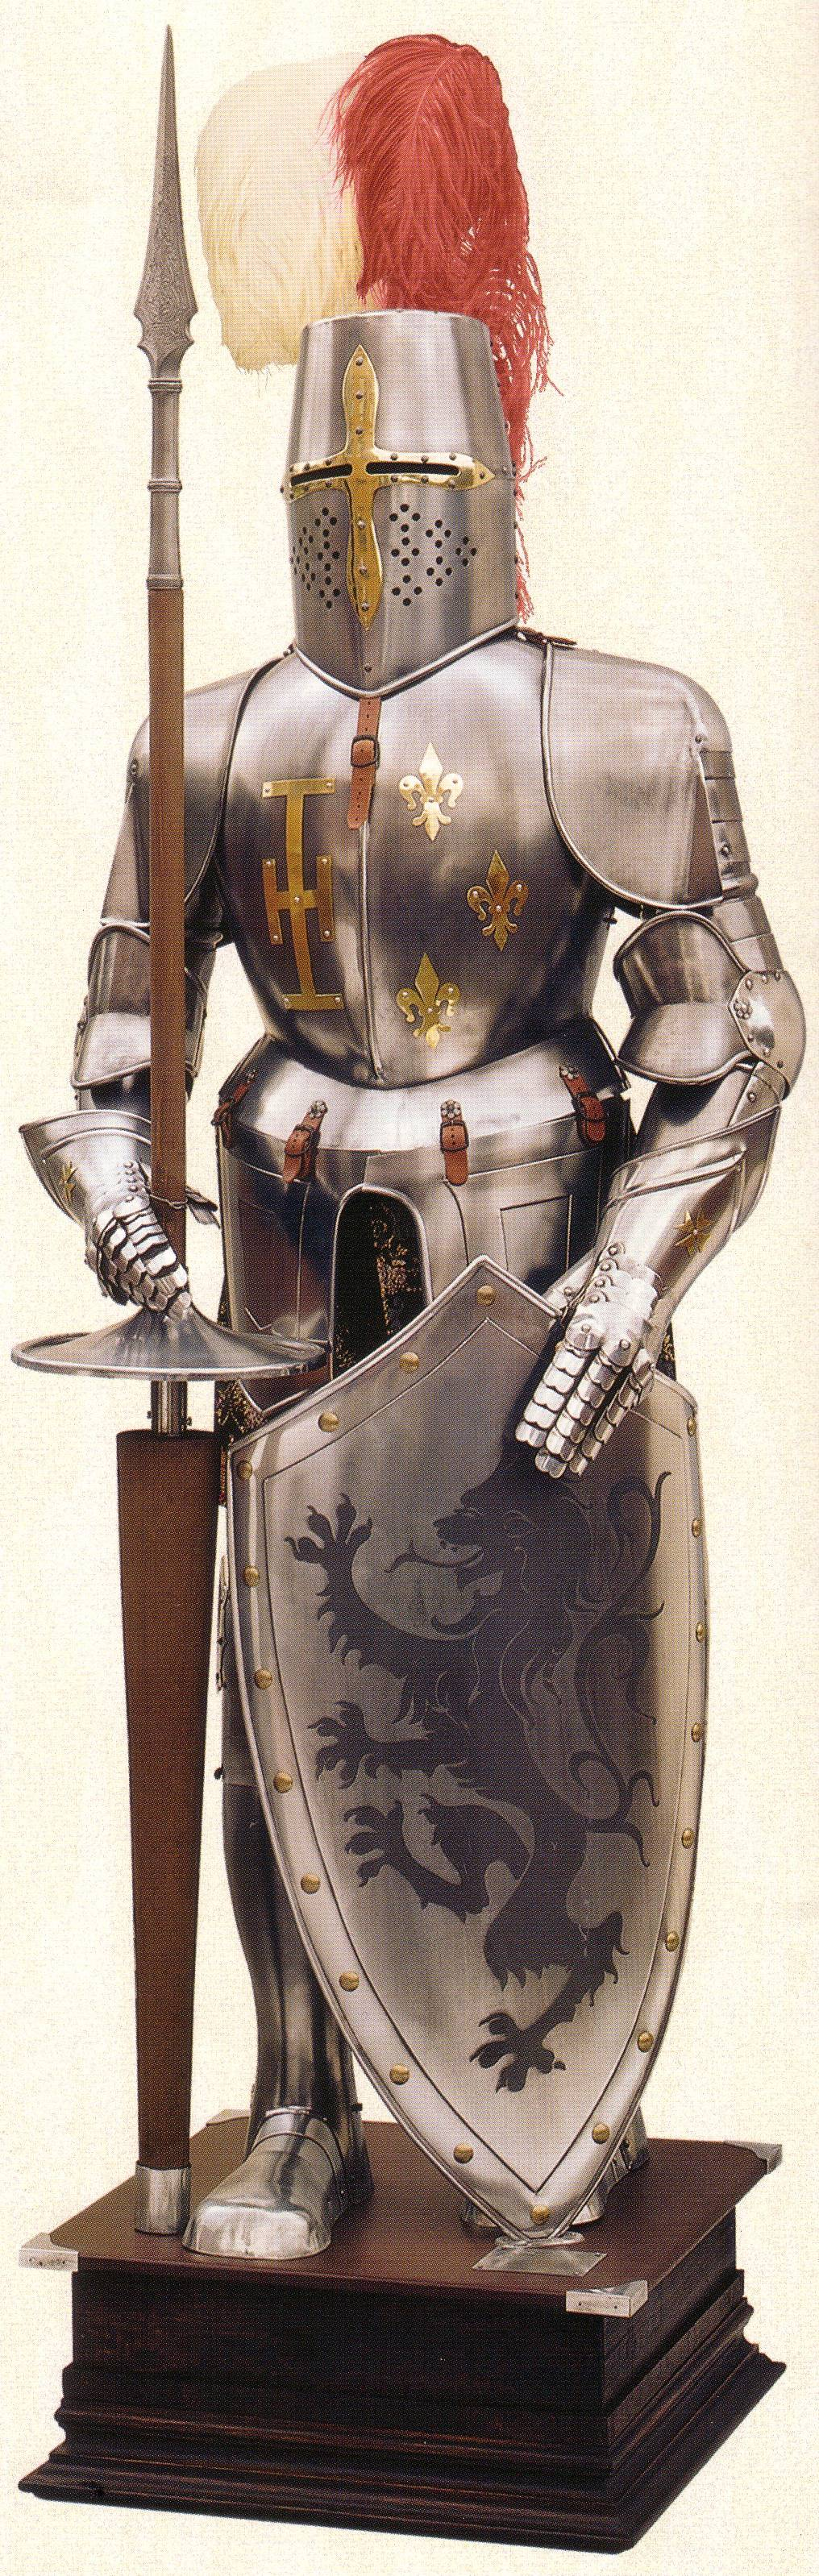 Medieval armour 905. Historic Armor made by Marto, Toledo